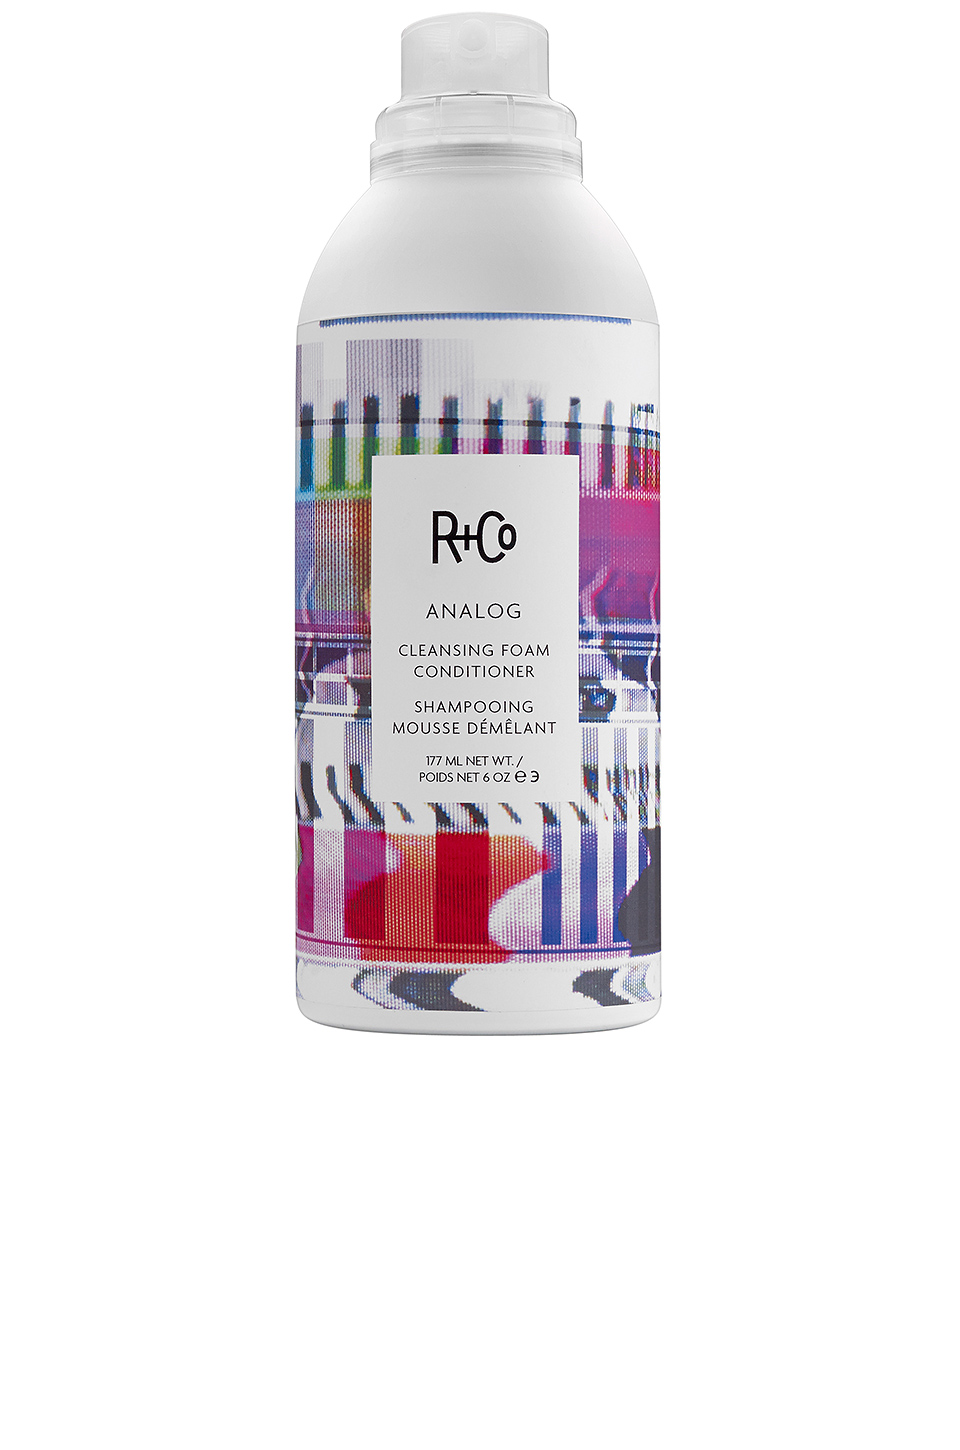 R+Co Analog Cleansing Foam Conditioner in